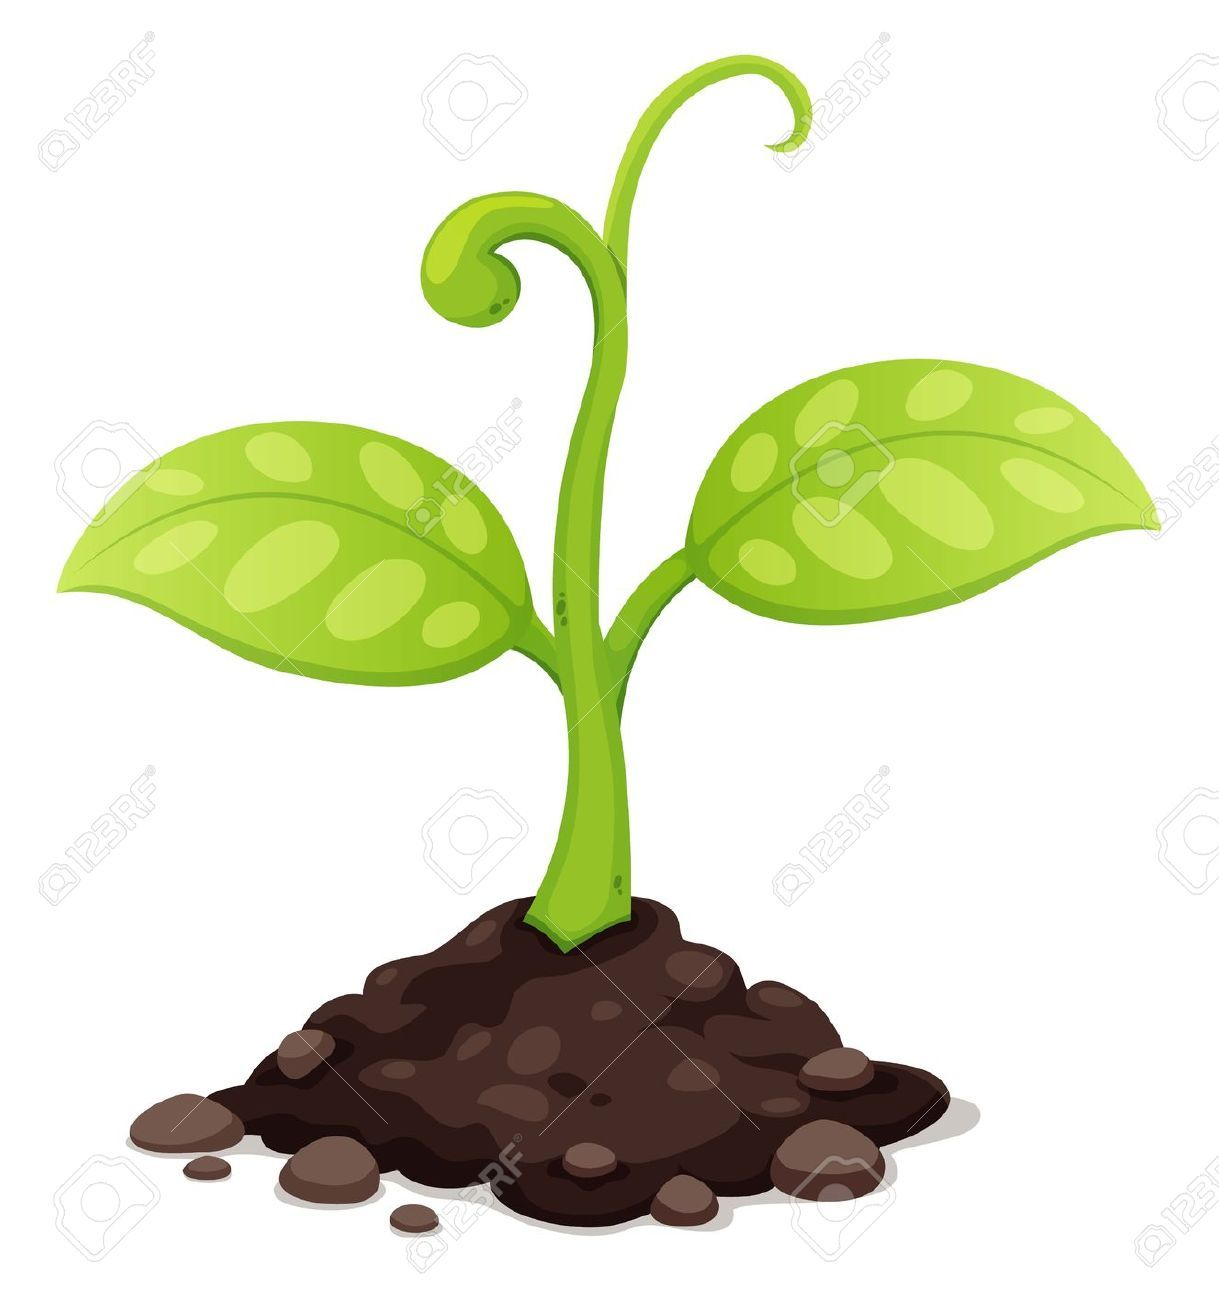 Seed growing images stock. Planting clipart rich soil